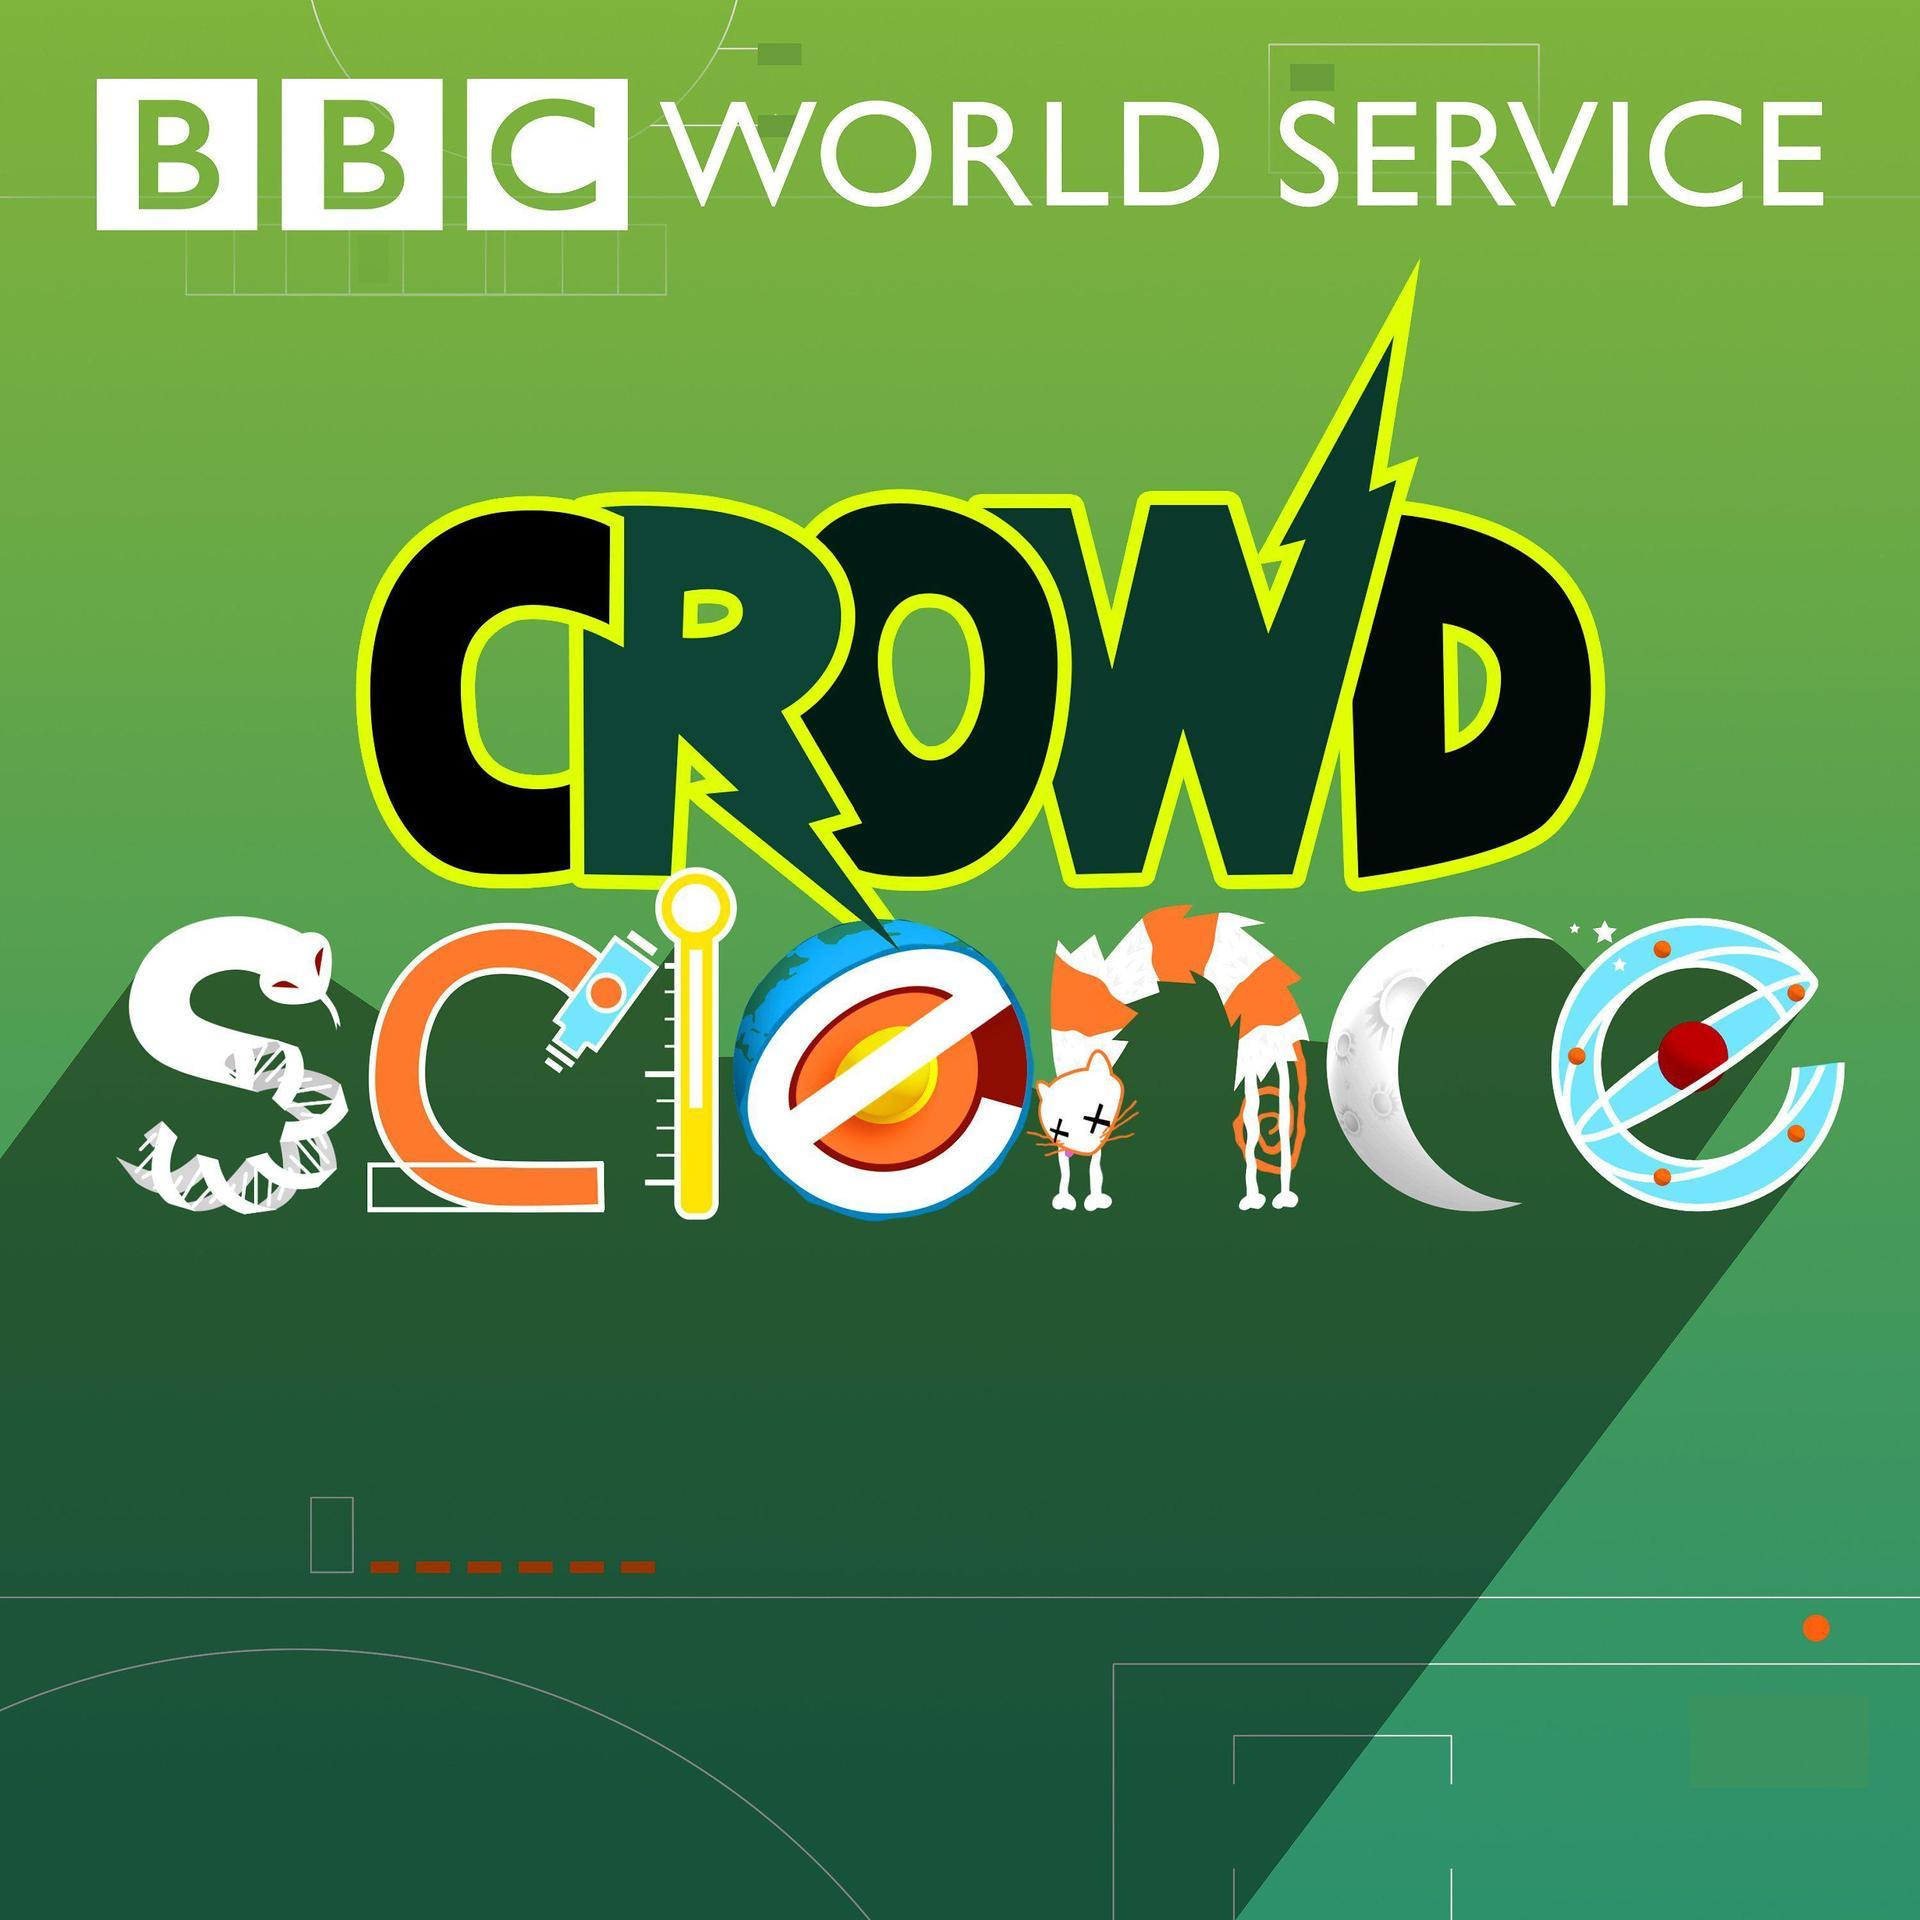 Crowd science